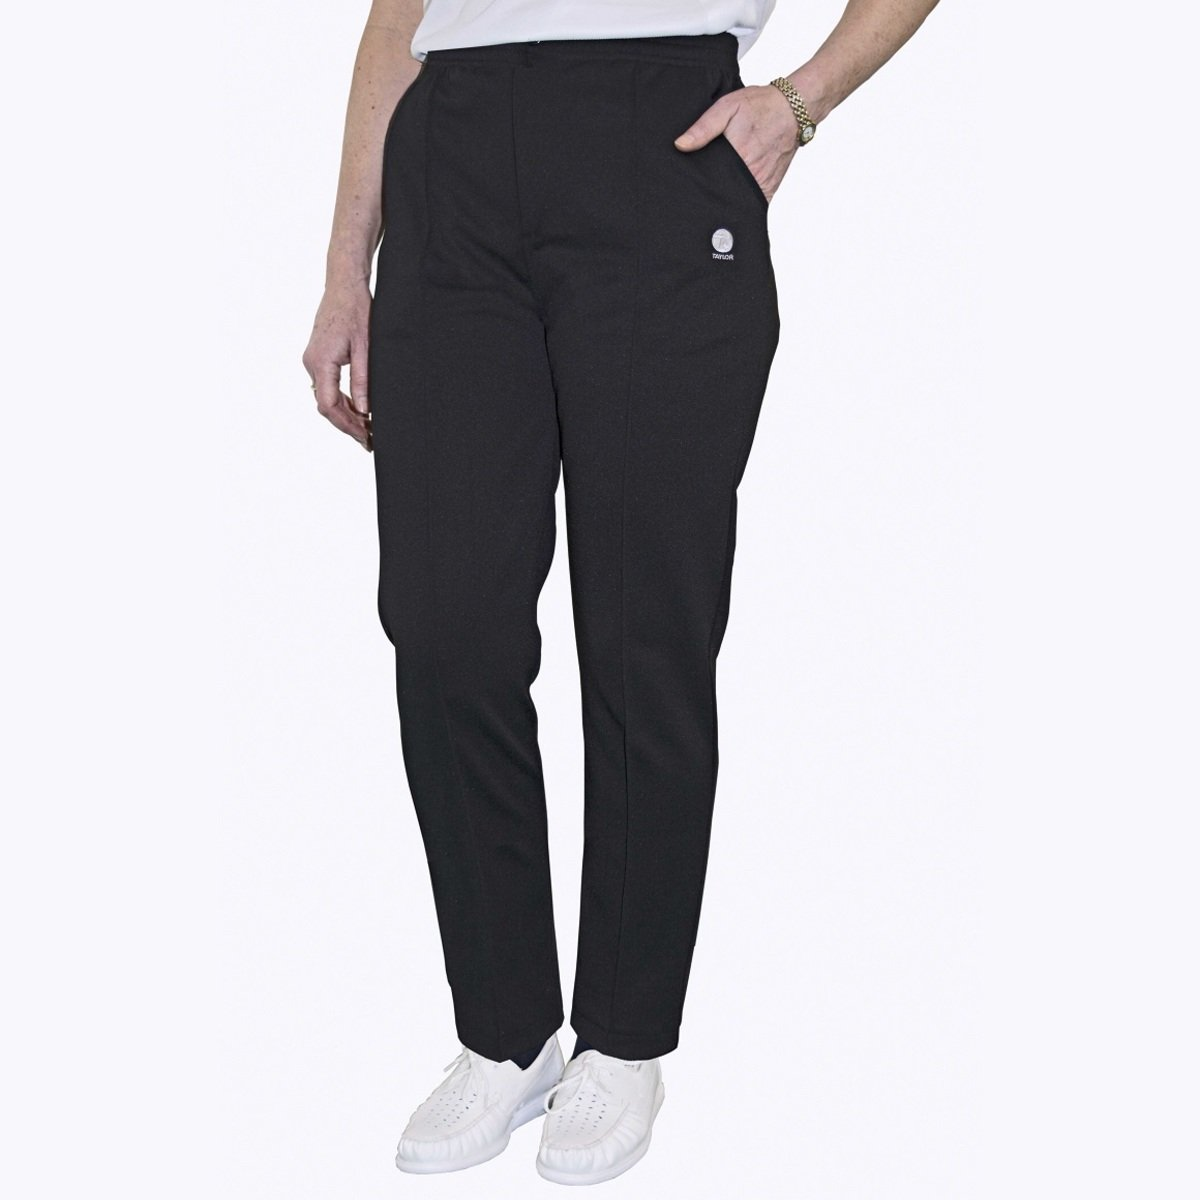 TAYLOR LADIES SPORTS TROUSERS - Black